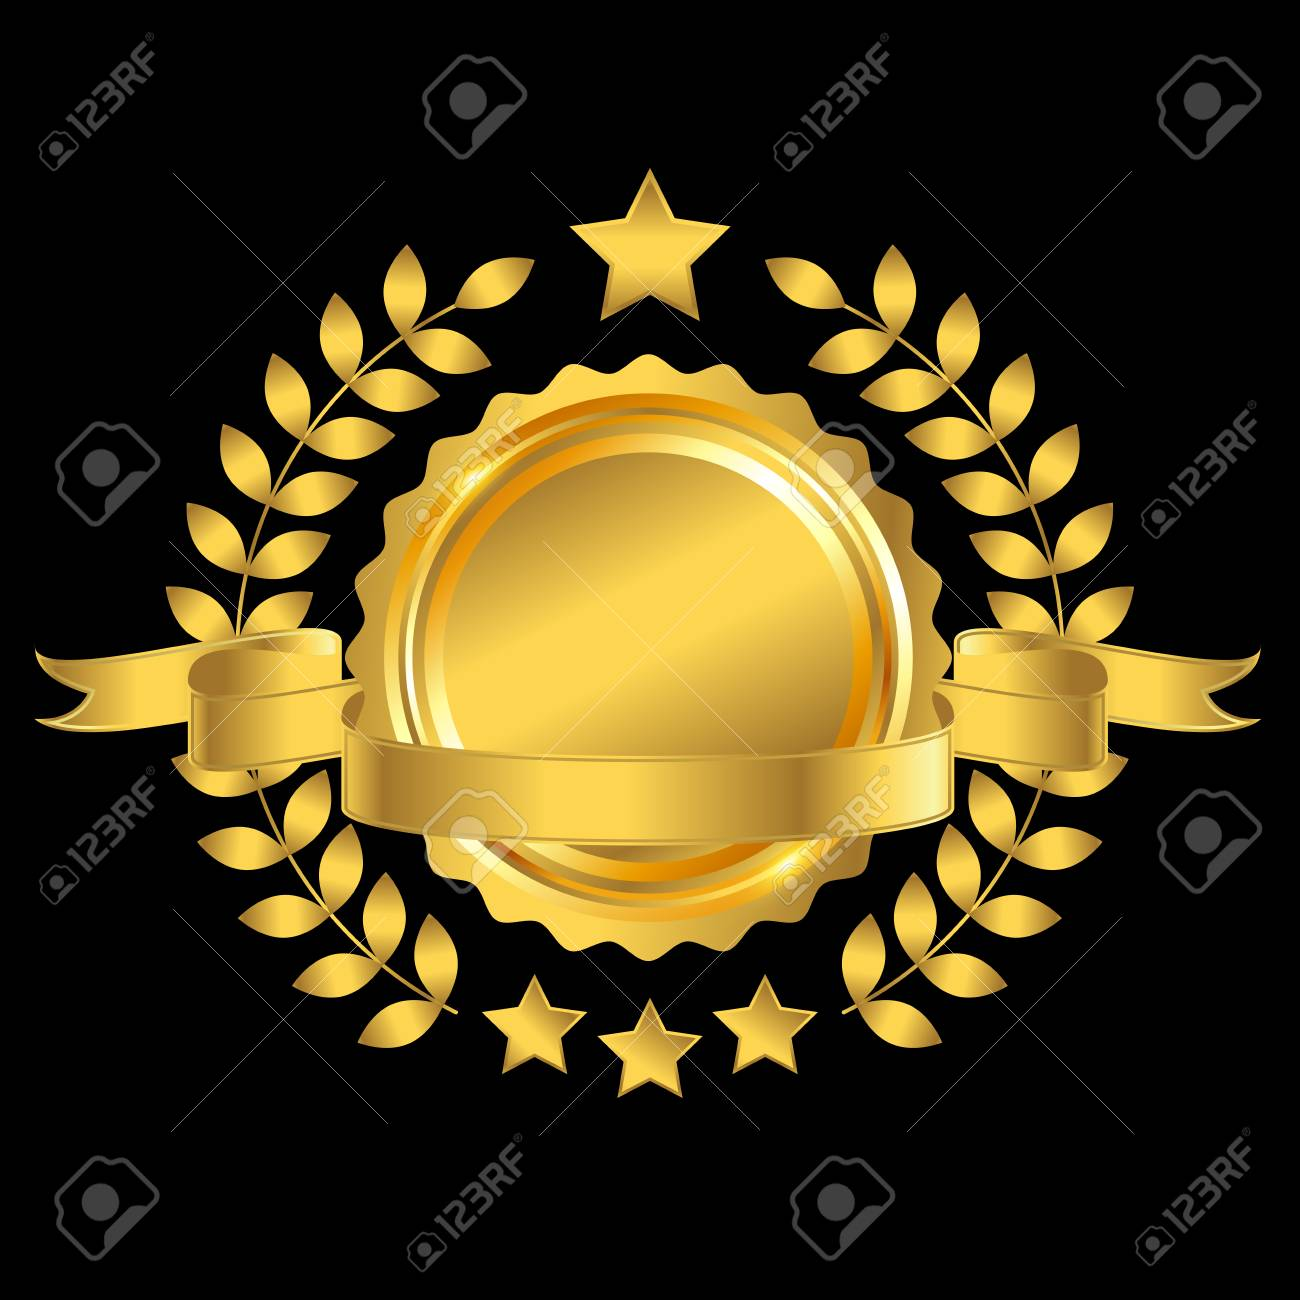 golden badge with ribbon and wreath on blank background, vector.. royalty  free cliparts, vectors, and stock illustration. image 73367379.  123rf